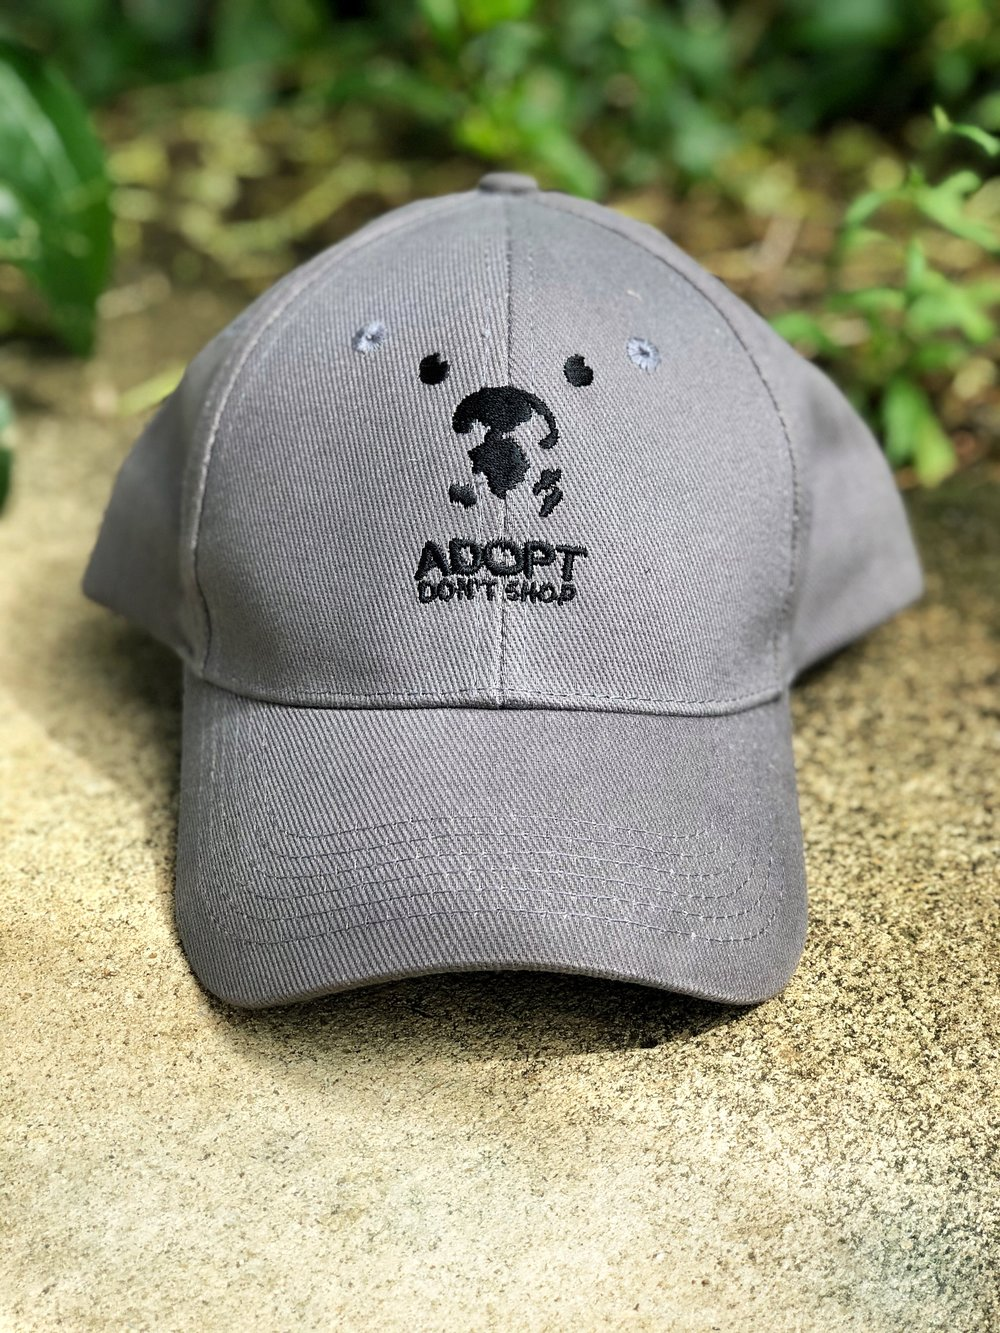 Charcoal Grey hat with black logo